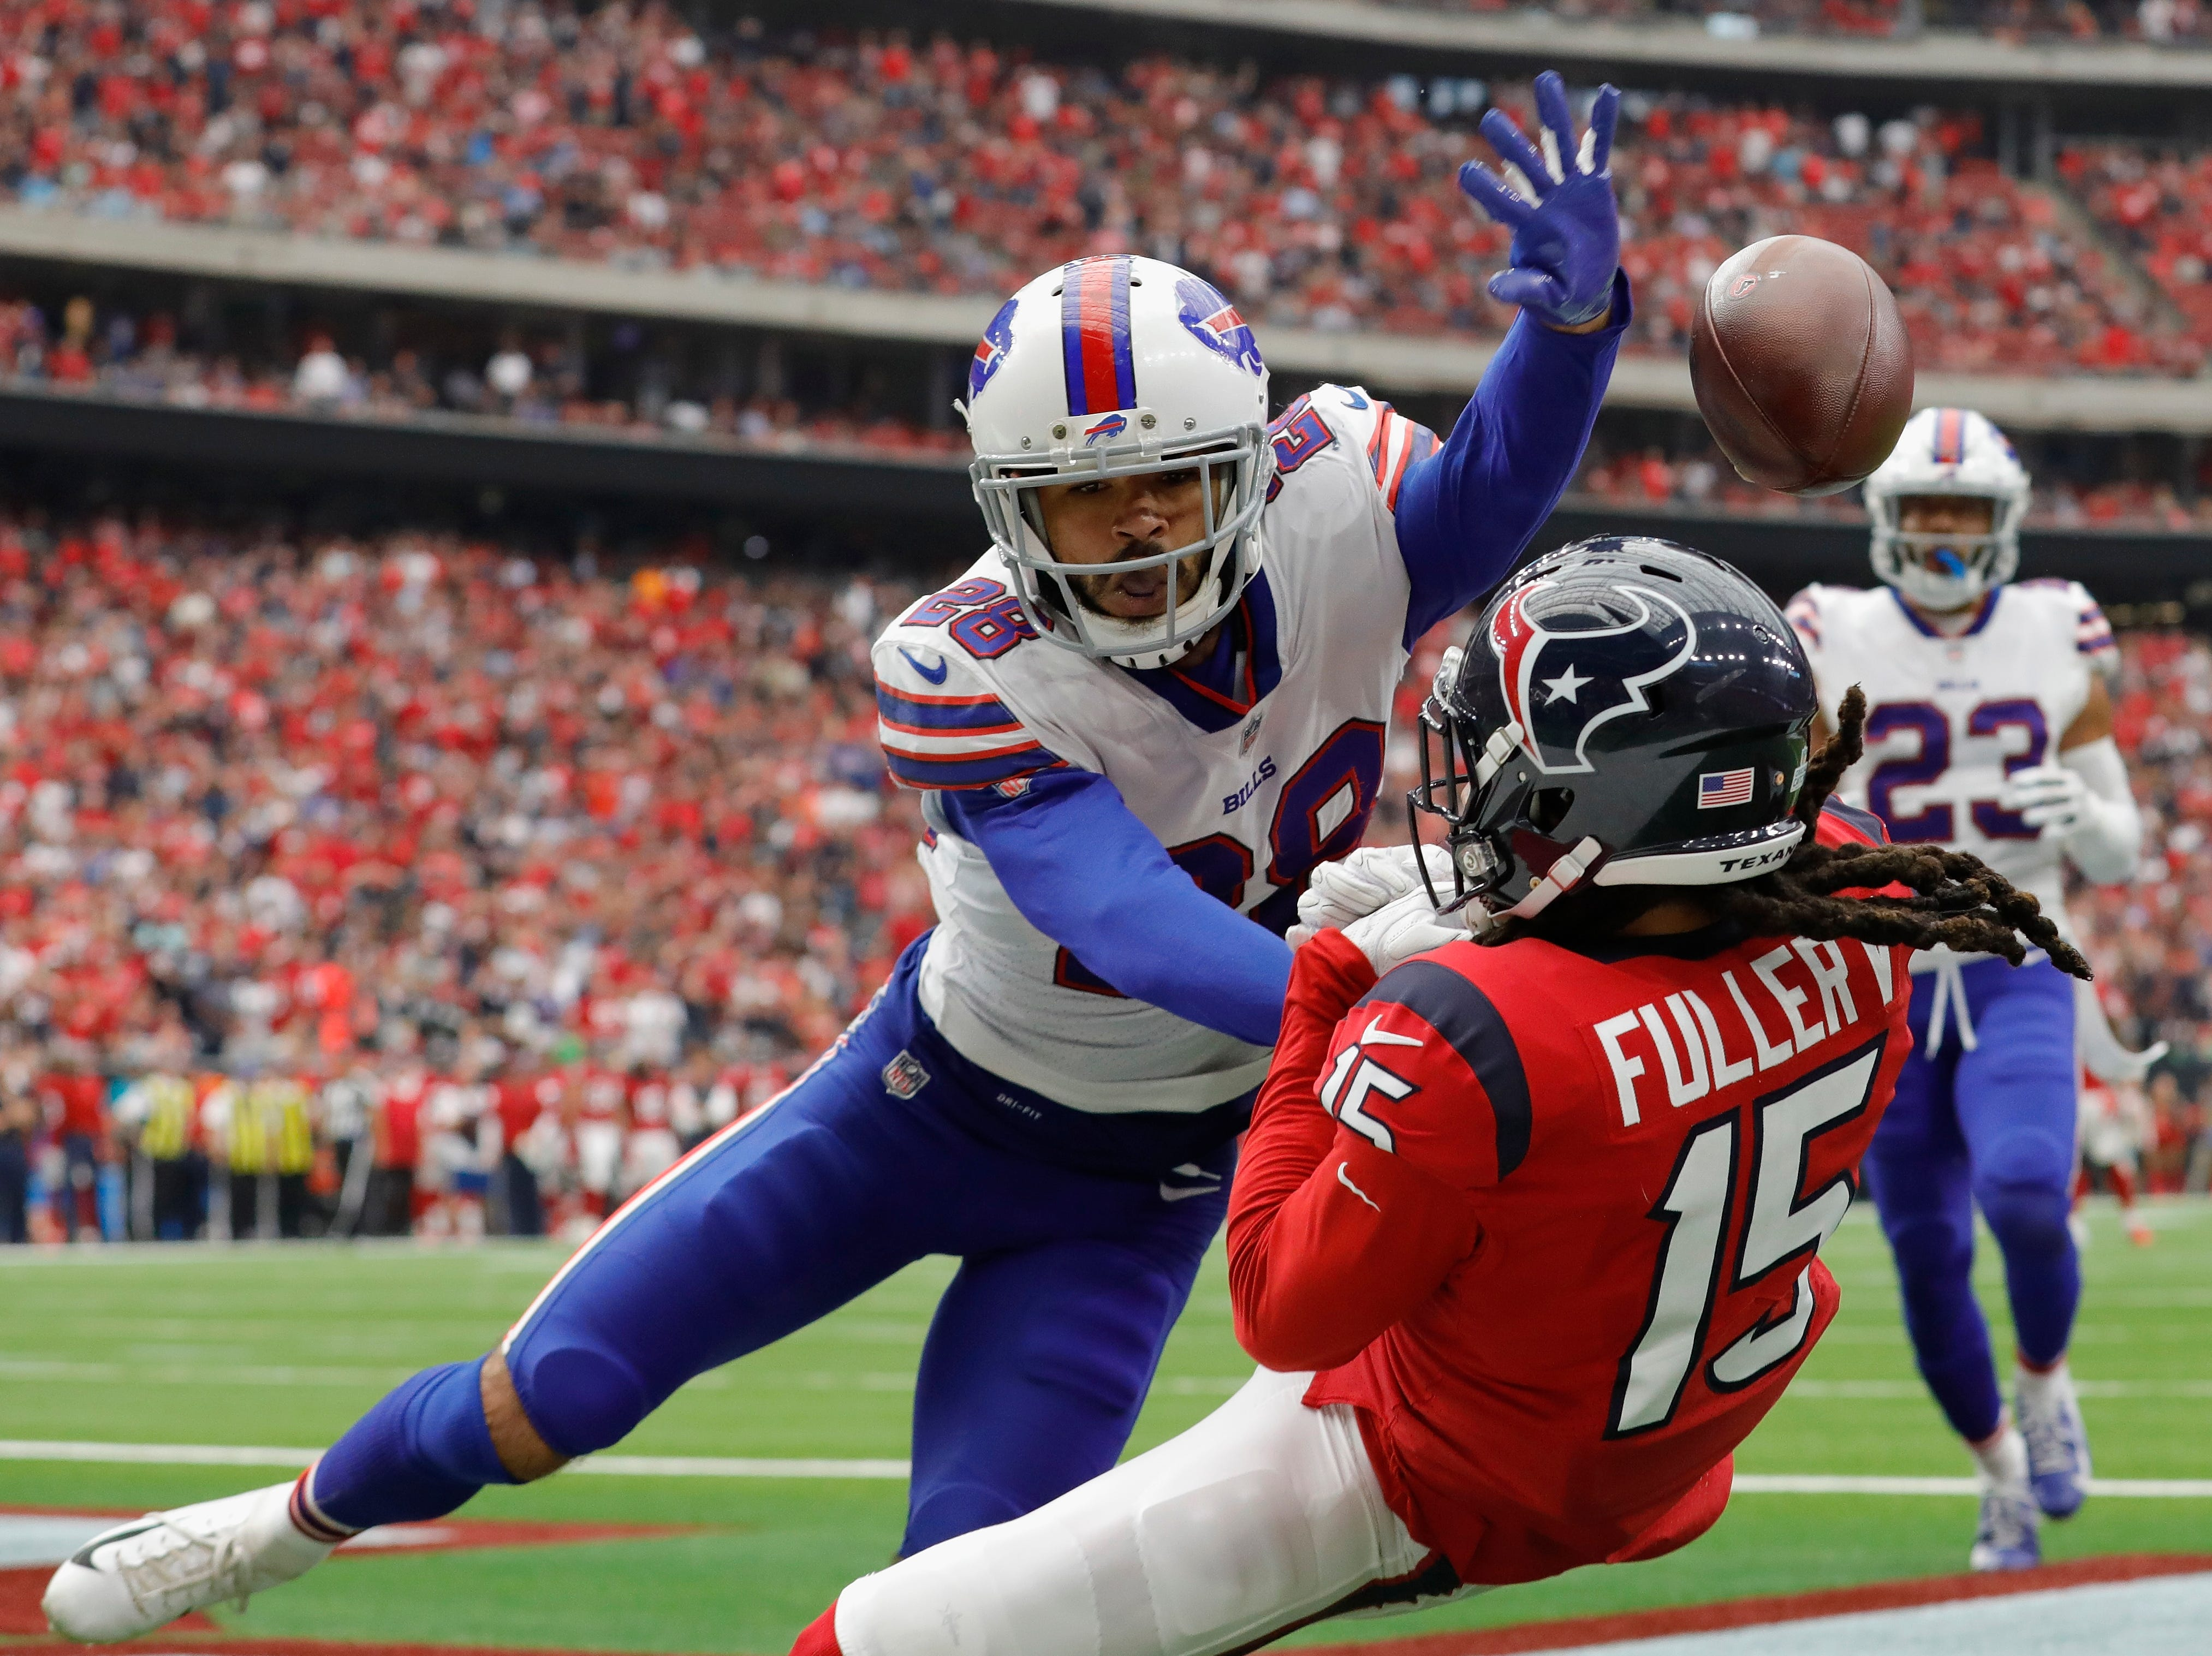 HOUSTON, TX - OCTOBER 14:  Phillip Gaines #28 of the Buffalo Bills is called for interference on Will Fuller #15 of the Houston Texans in the endzone in the fourth quarter at NRG Stadium on October 14, 2018 in Houston, Texas.  (Photo by Tim Warner/Getty Images)